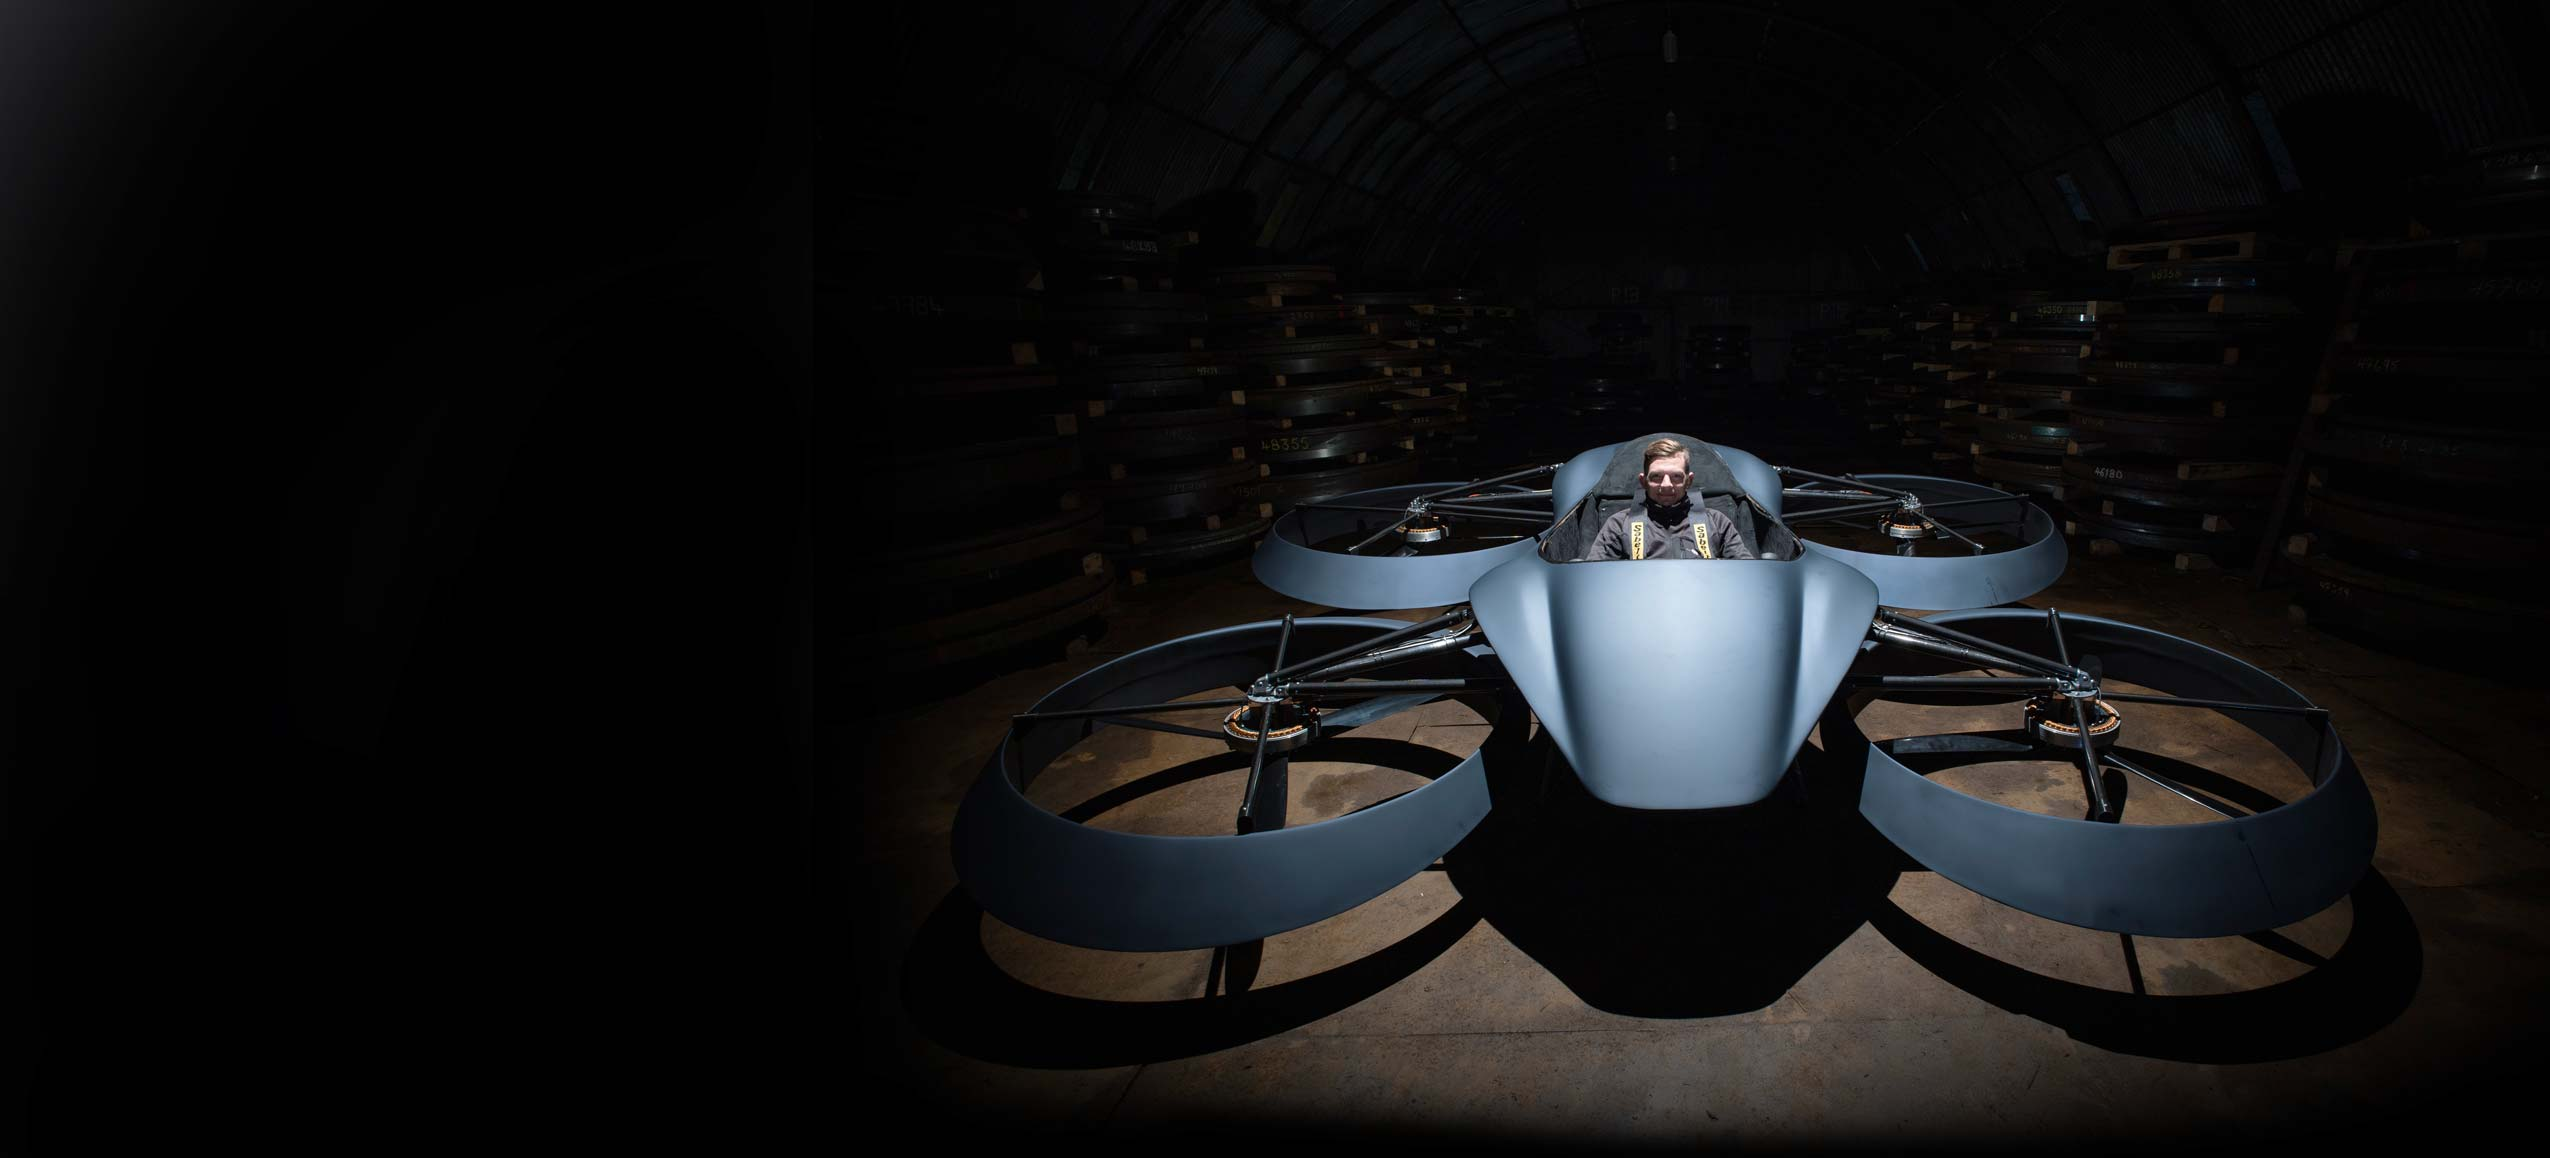 Manned drone (quadcopter)